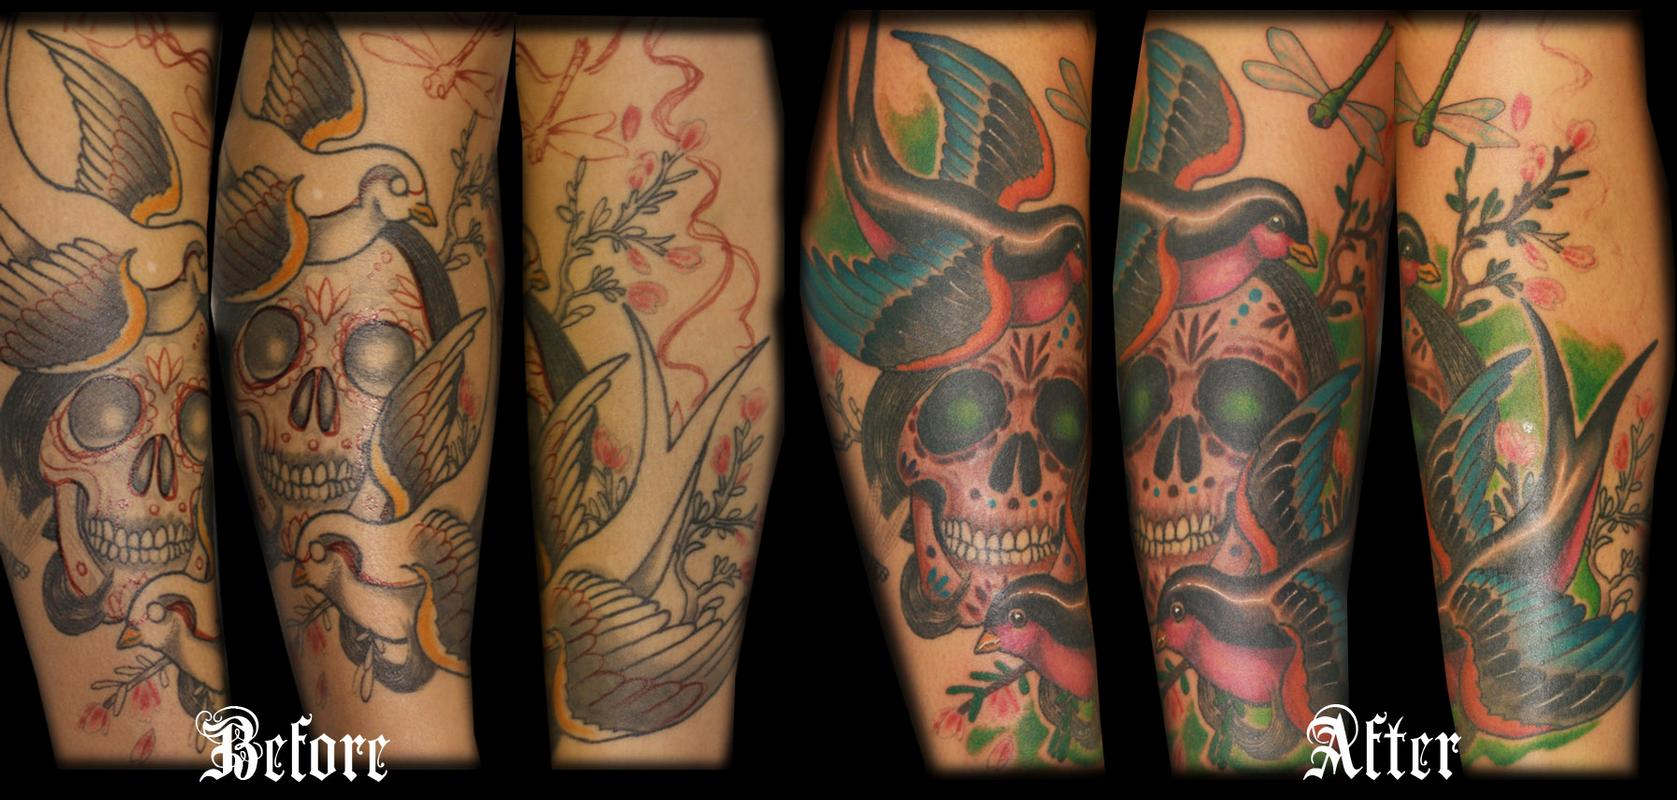 La la leg by aarom hemmersbach tattoonow for Iron lotus tattoo